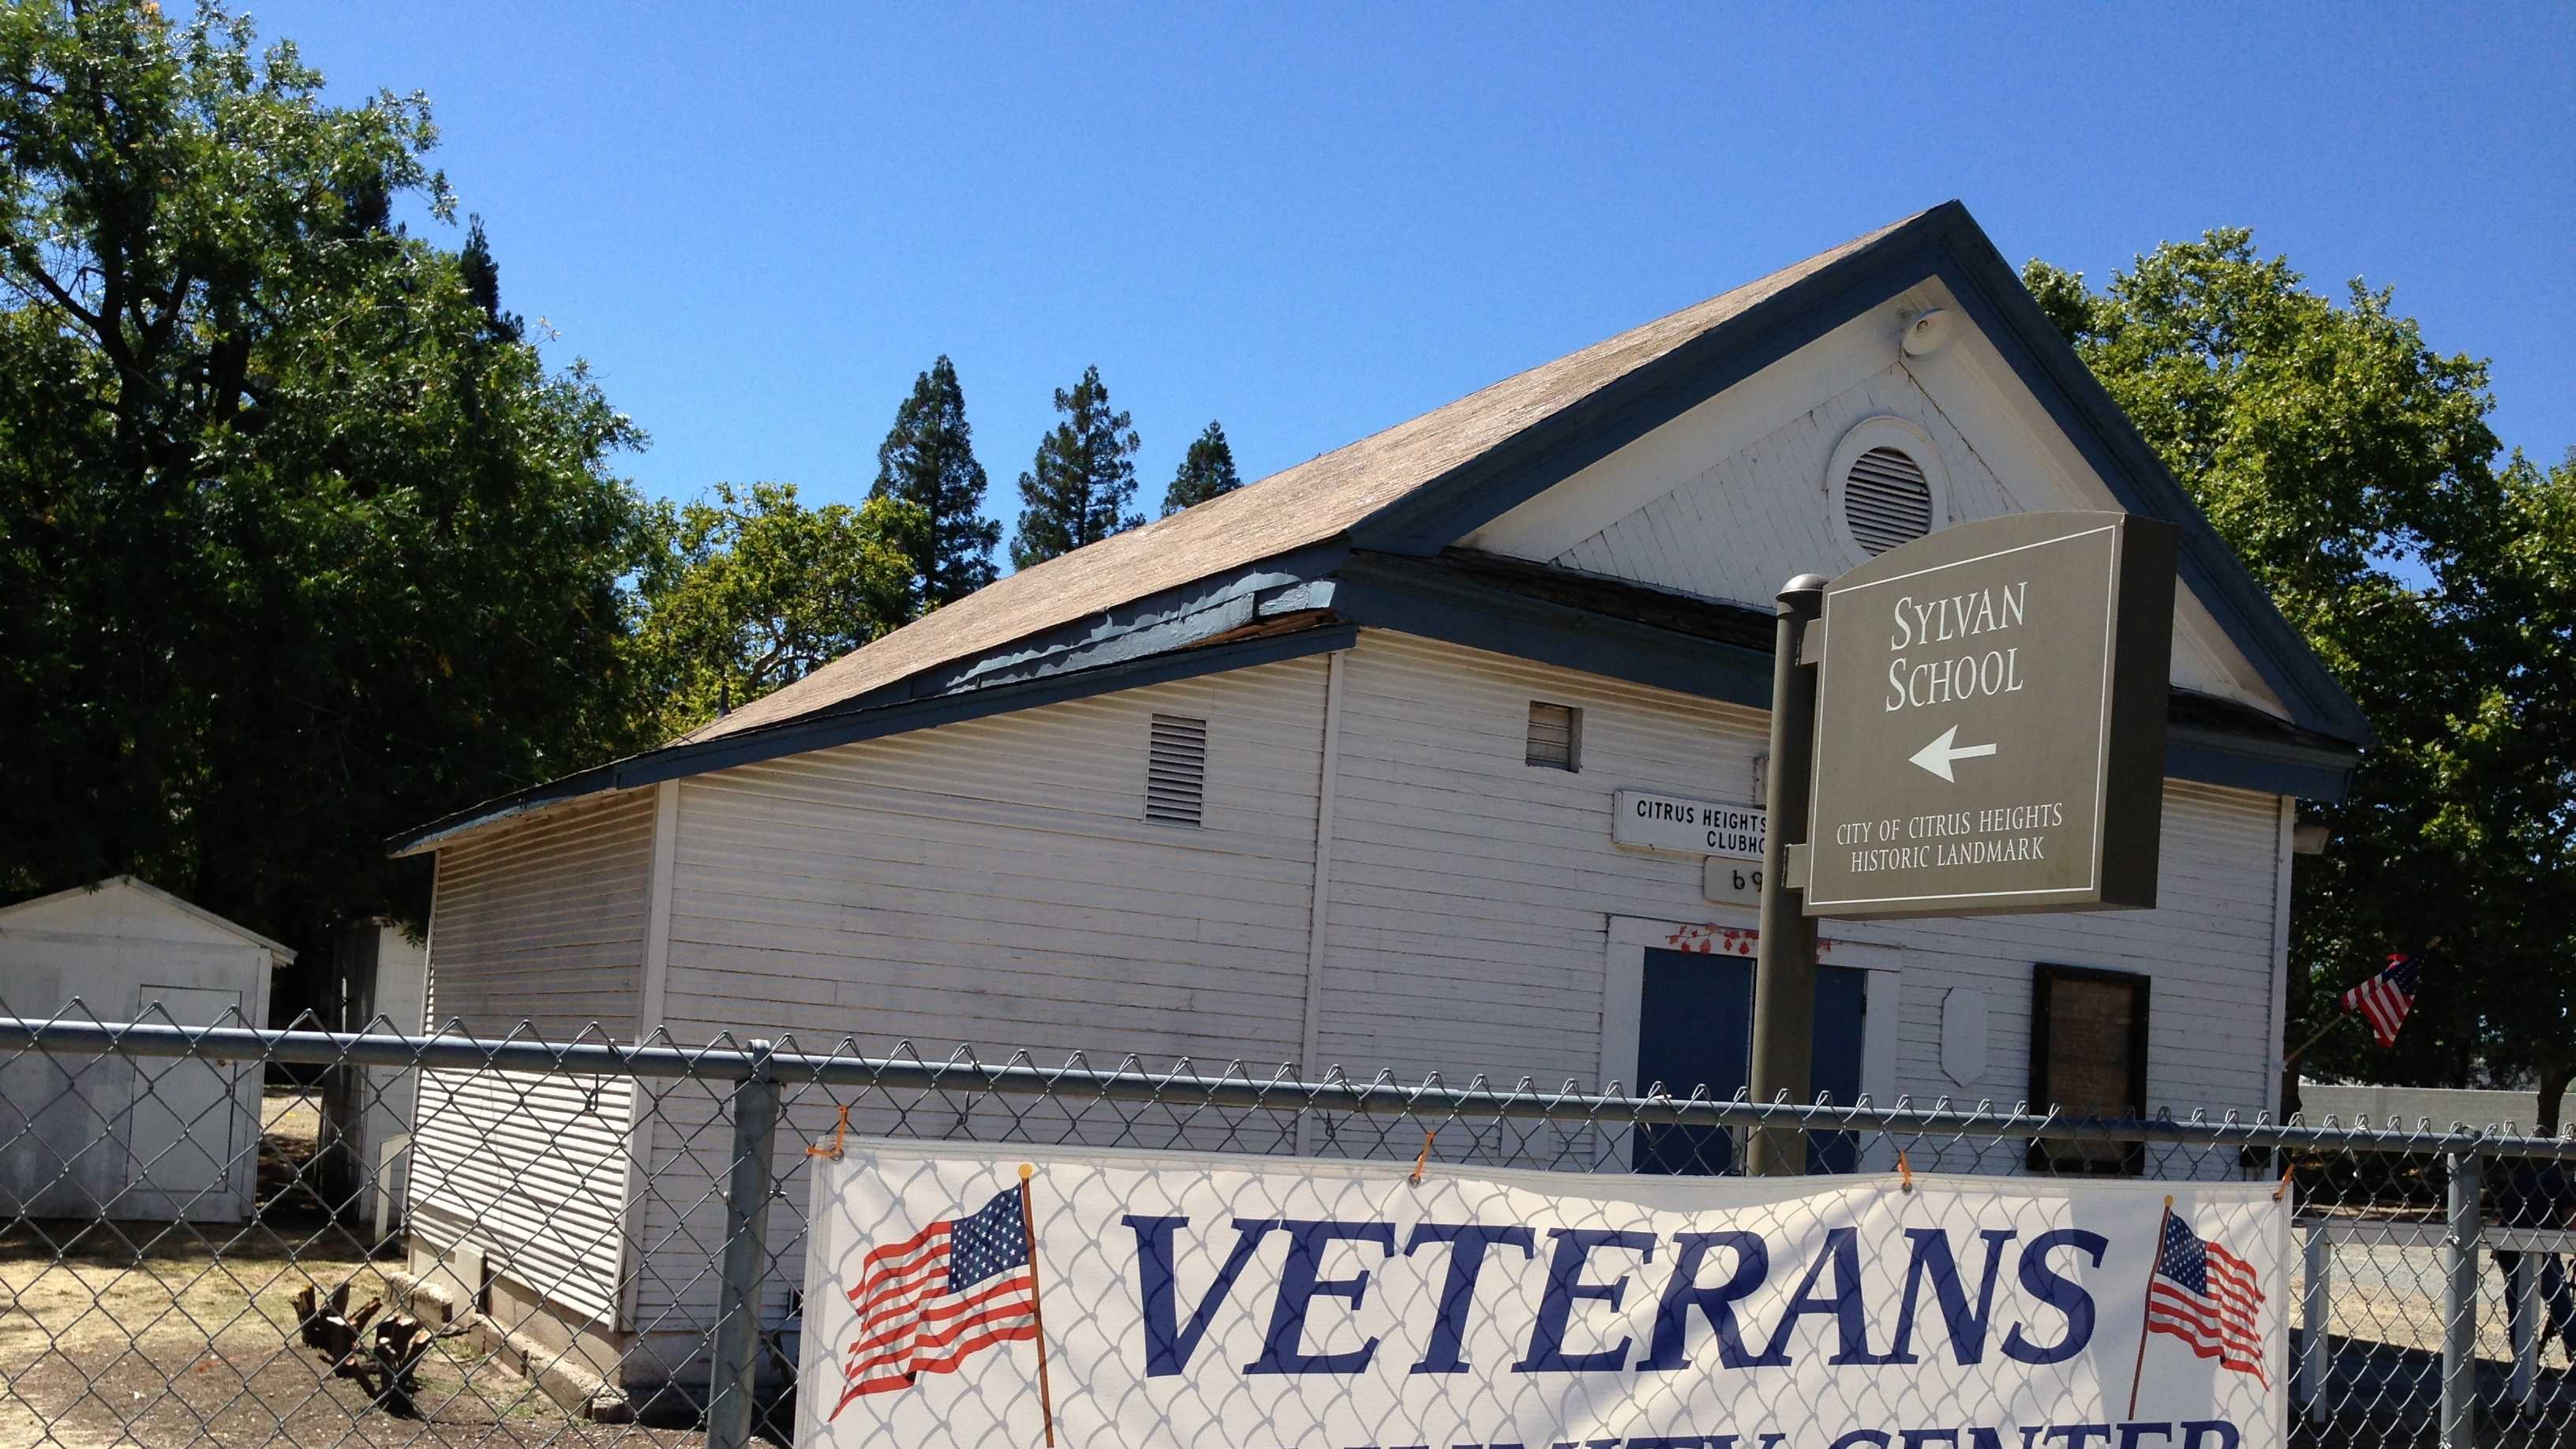 The Veterans Community Center in Citrus Heights was burglarized early Tuesday.